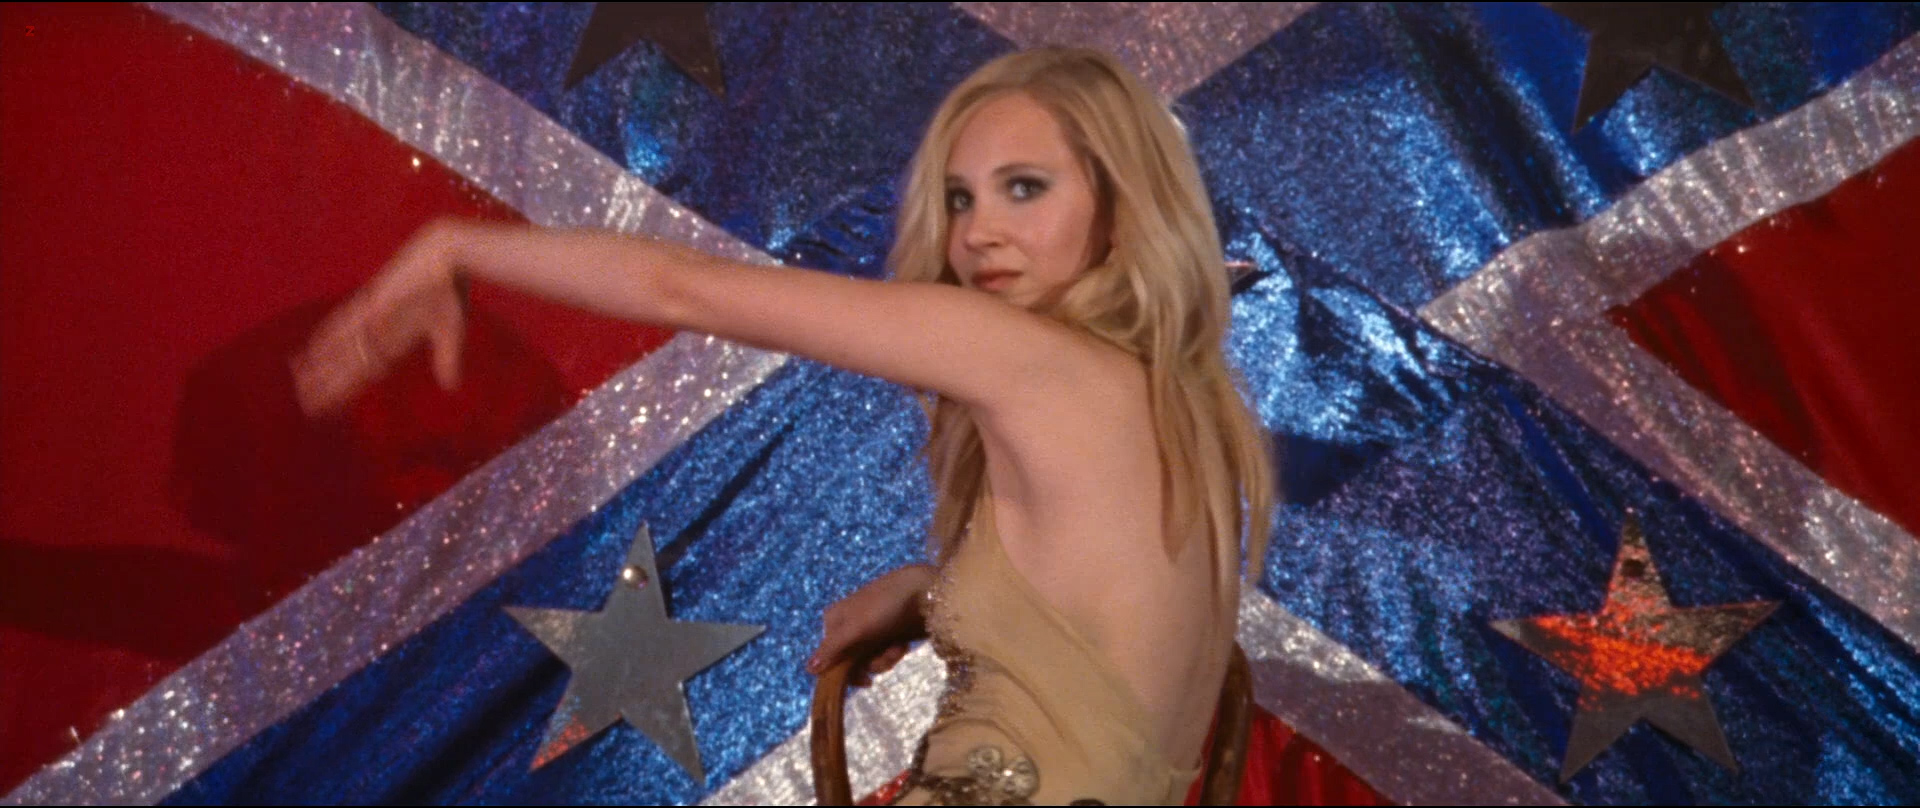 Juno Temple hot and sexy as stripper - Dirty Girl (2010) hd1080p (2)